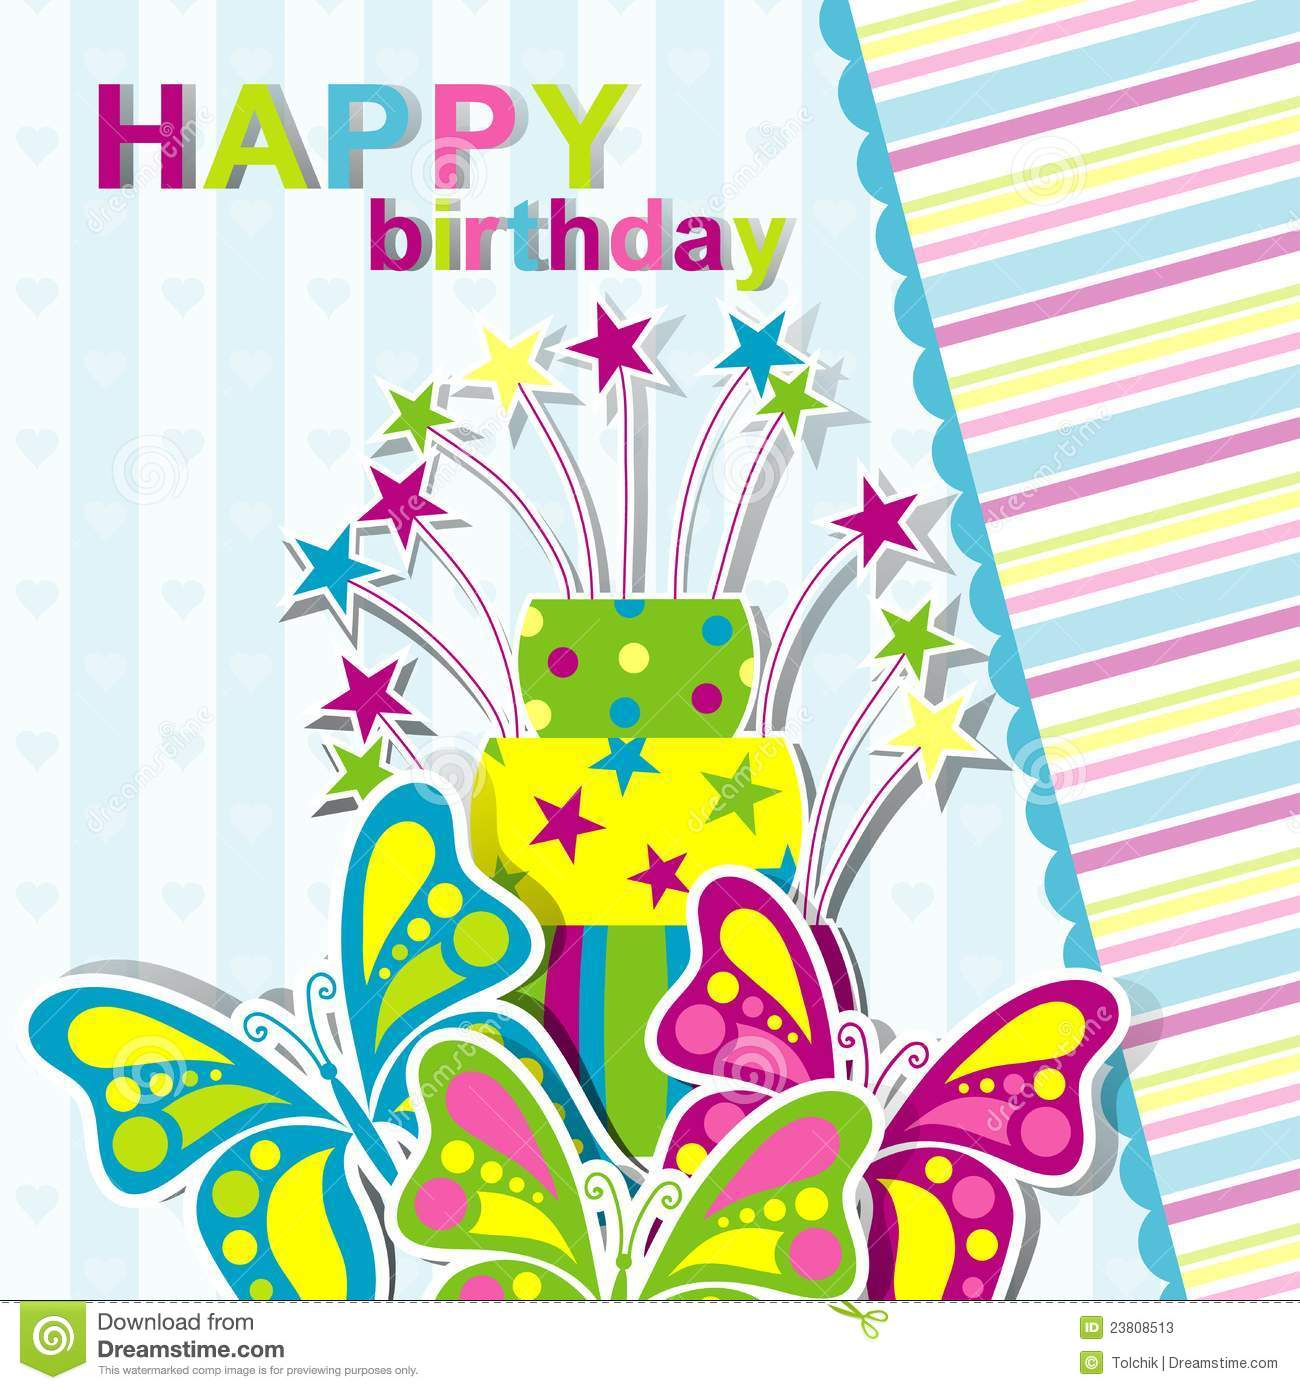 Template Greeting Card Royalty Free Stock Image: Template Birthday Greeting Card Stock Illustration